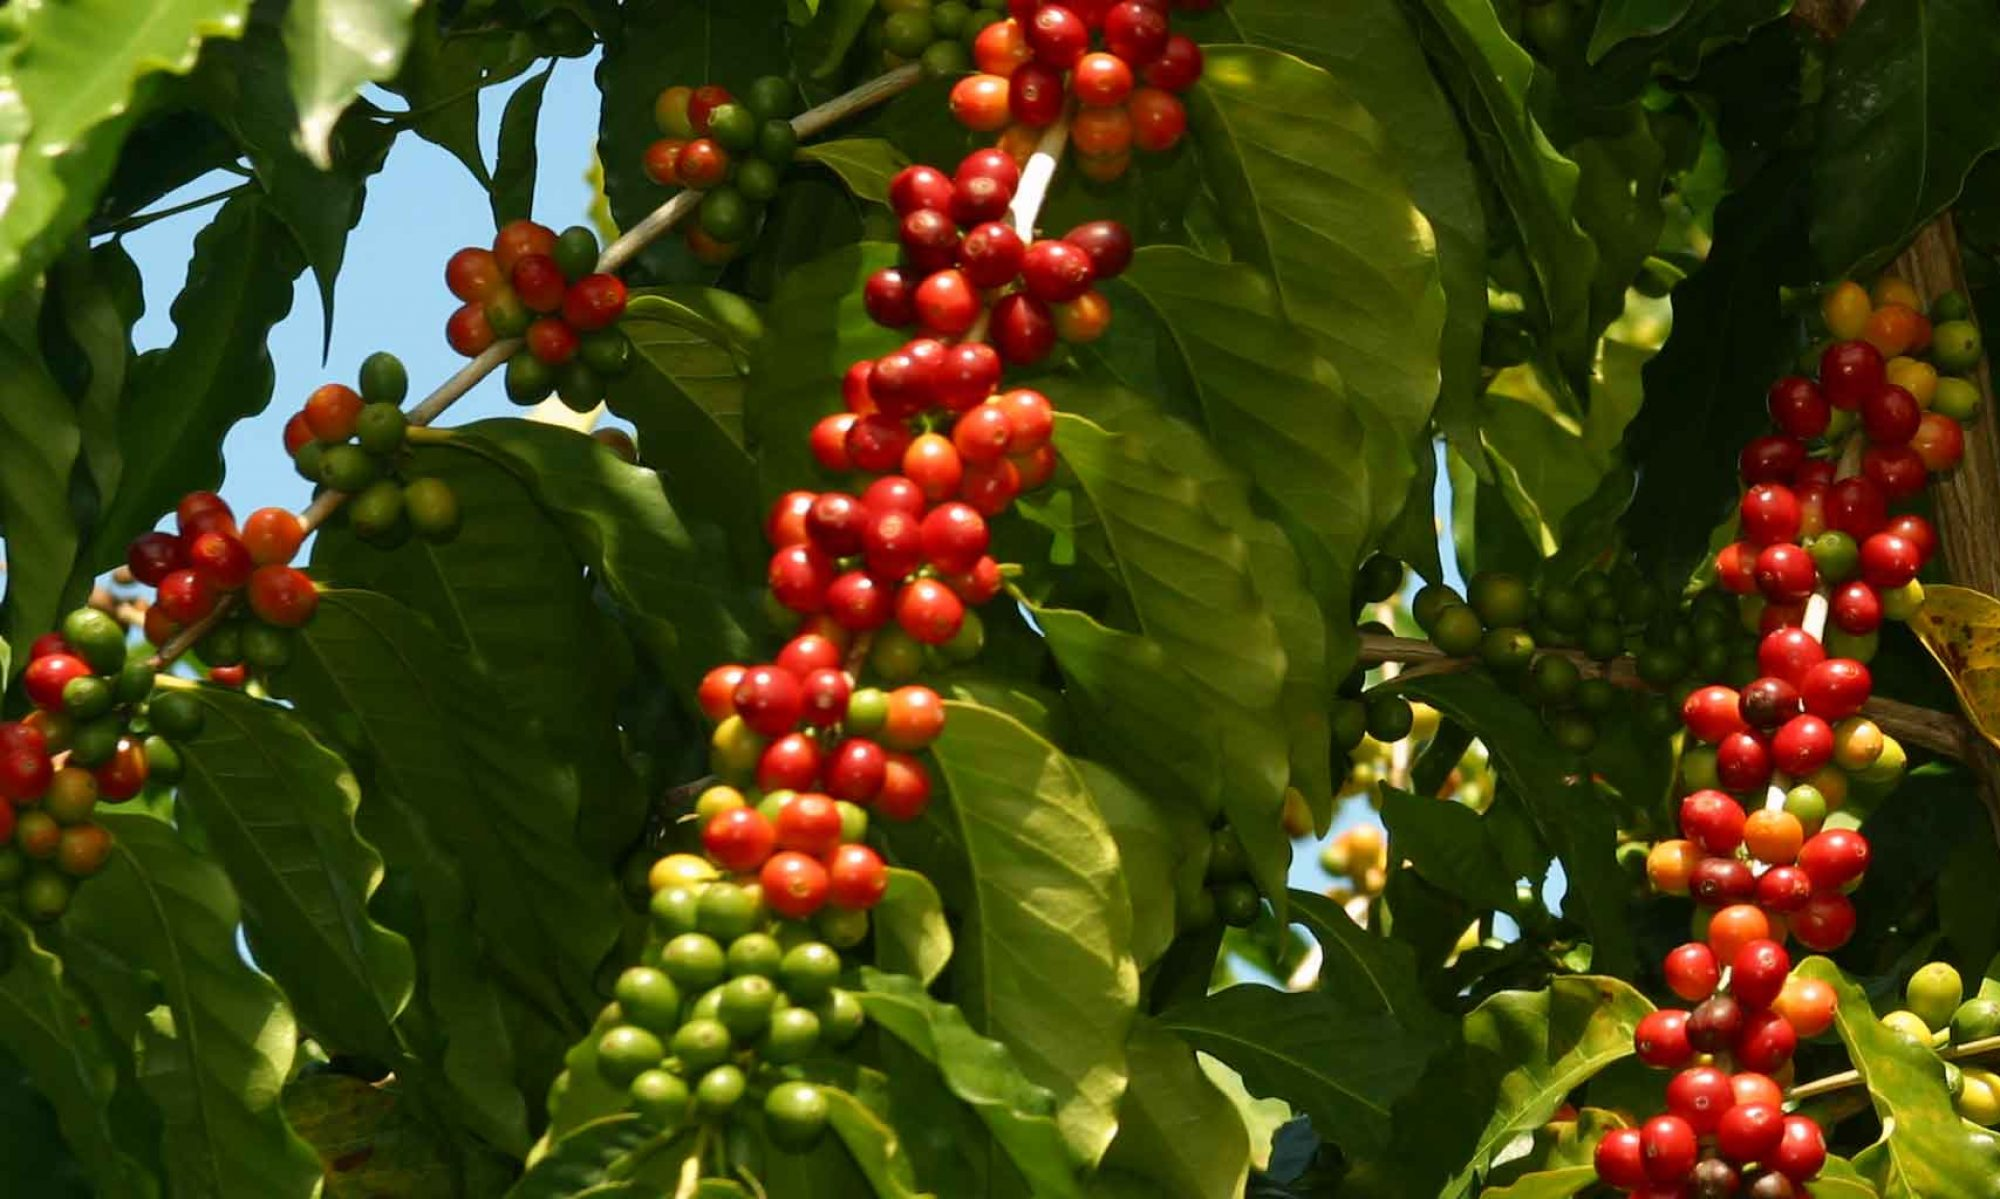 Coffee Harvest Season -Red Kona Coffee Cherries ready for hand picking